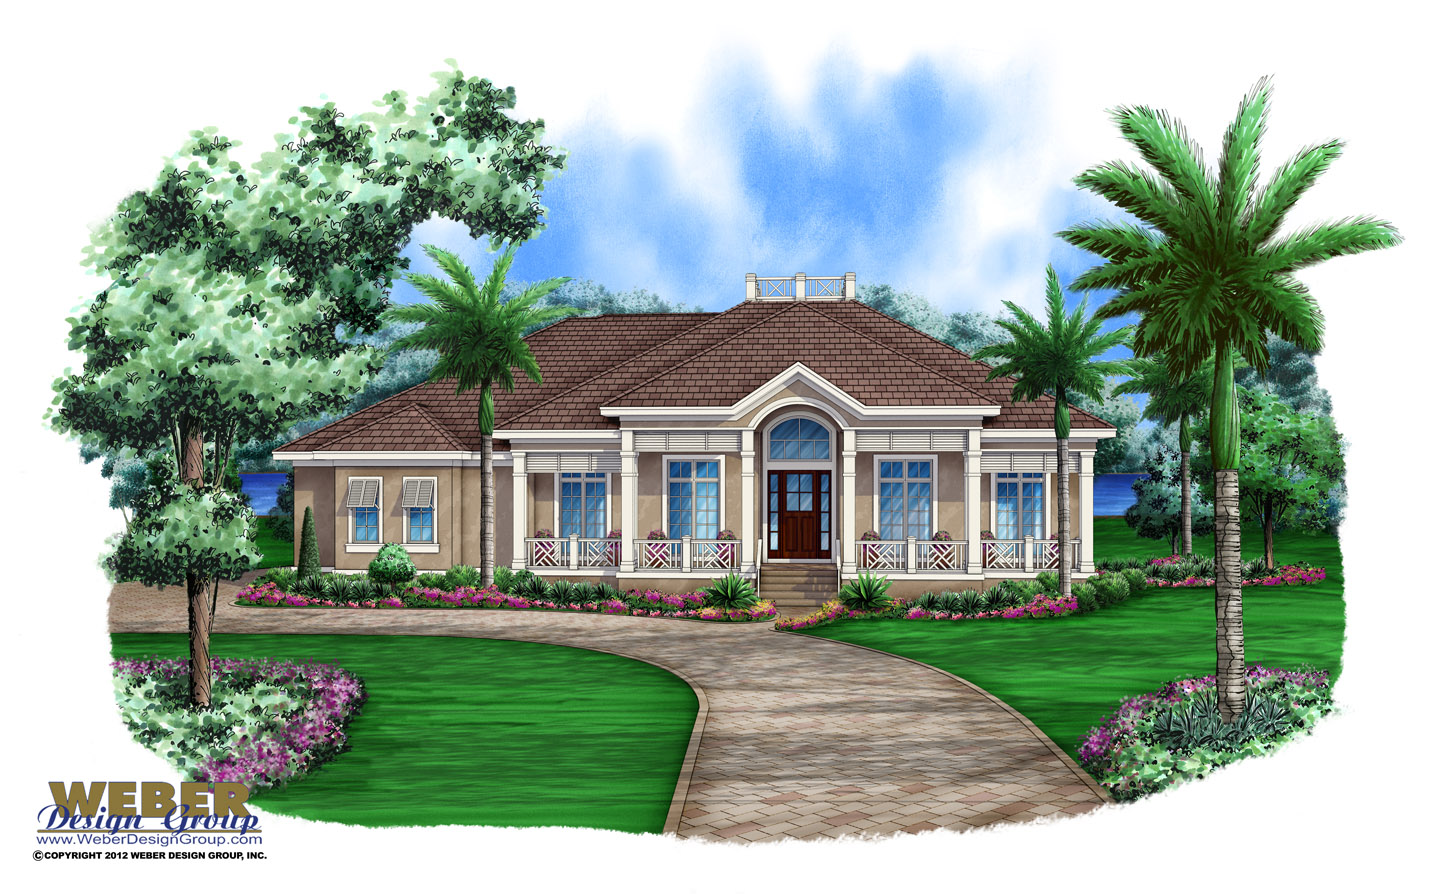 Beach house plan olde florida west indies beach home for Florida house designs